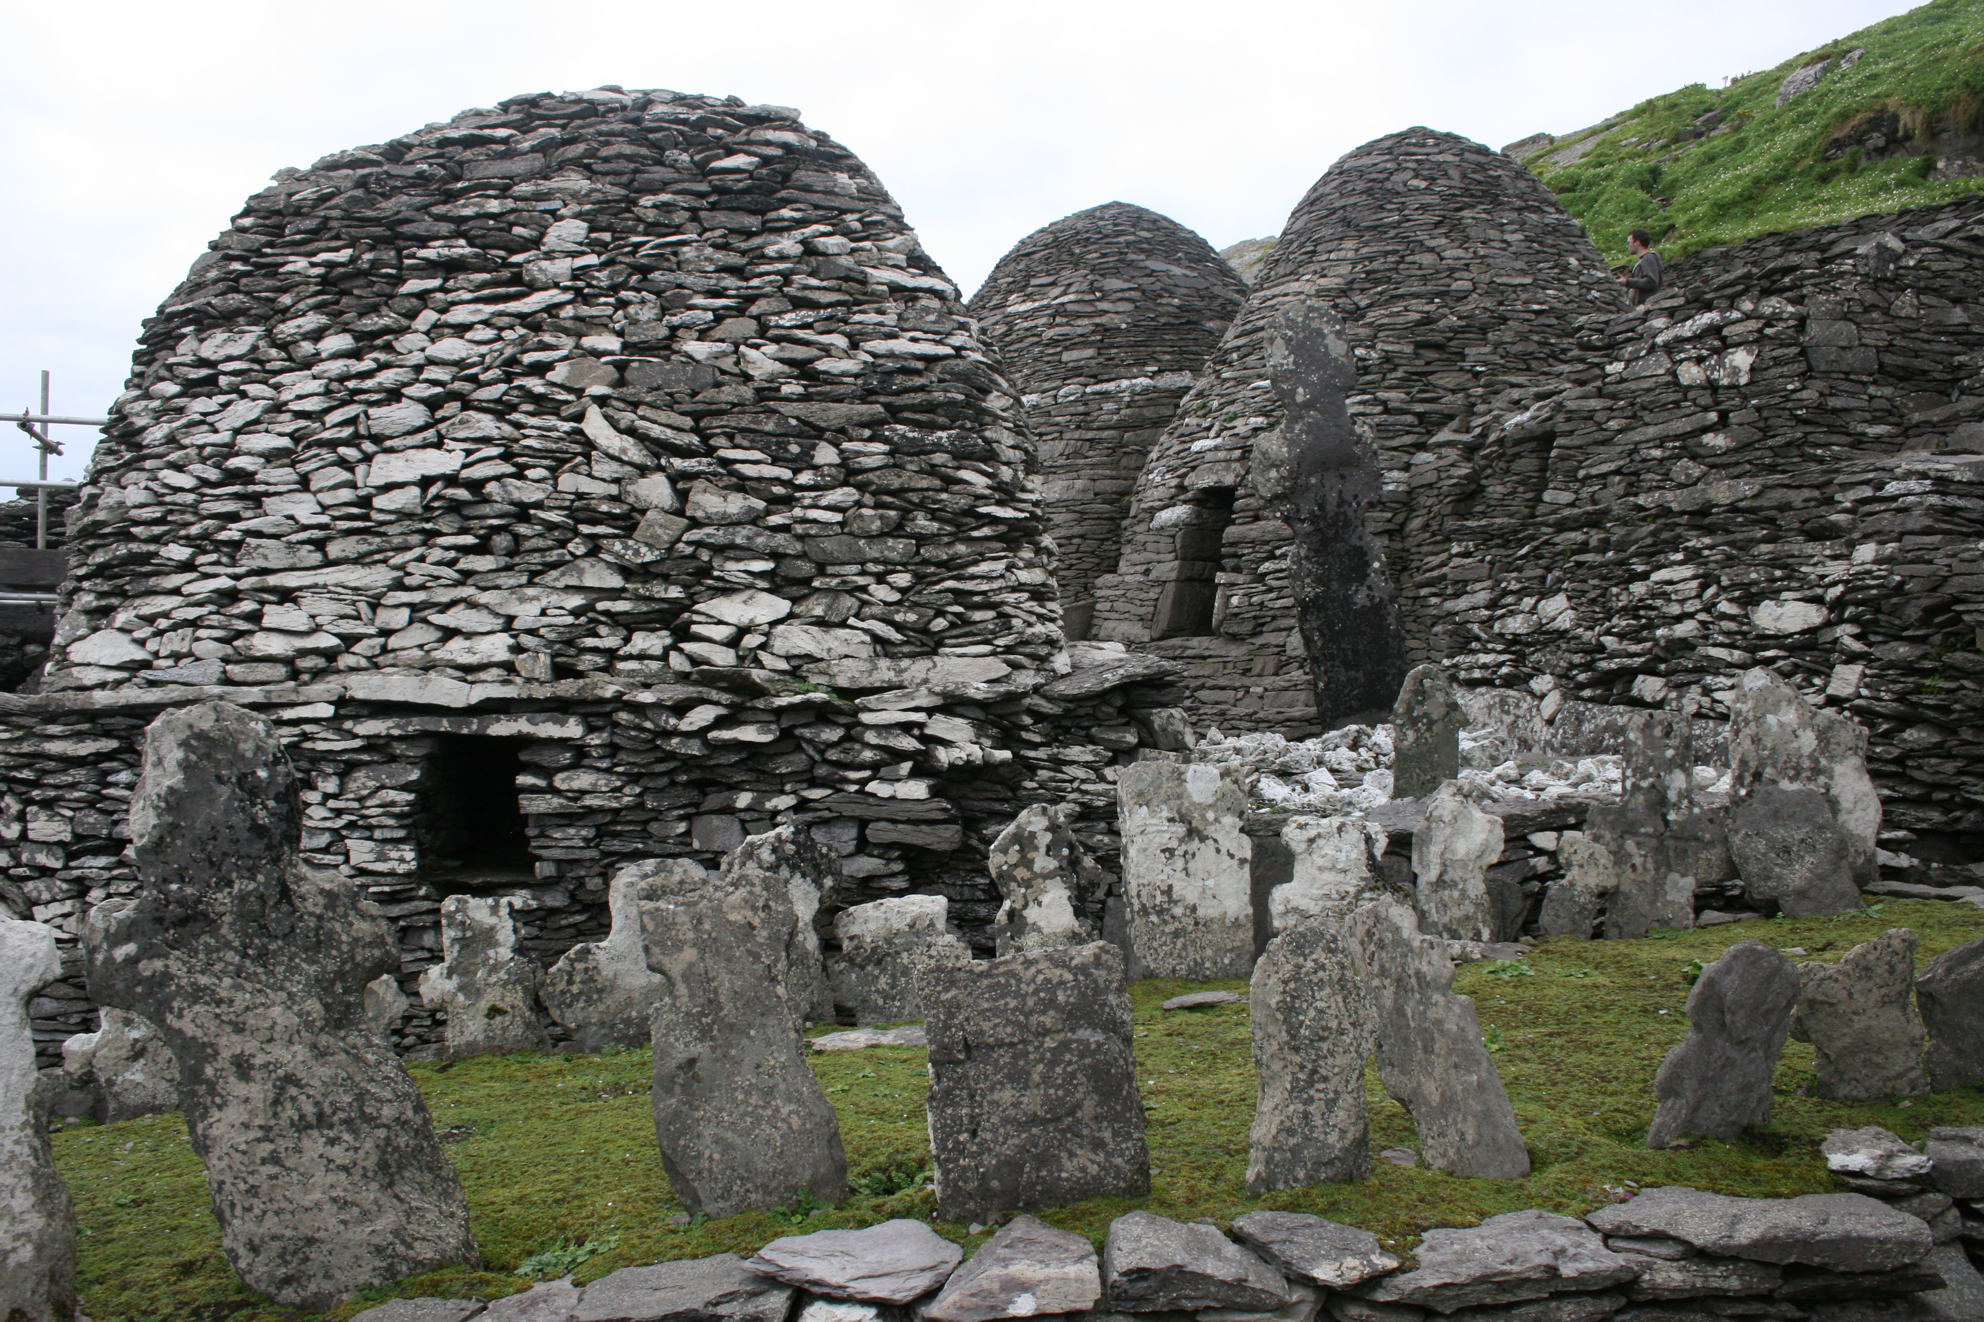 The stone beehive huts inside the monastic settlement on Skellig Michael, Co. Kerry.